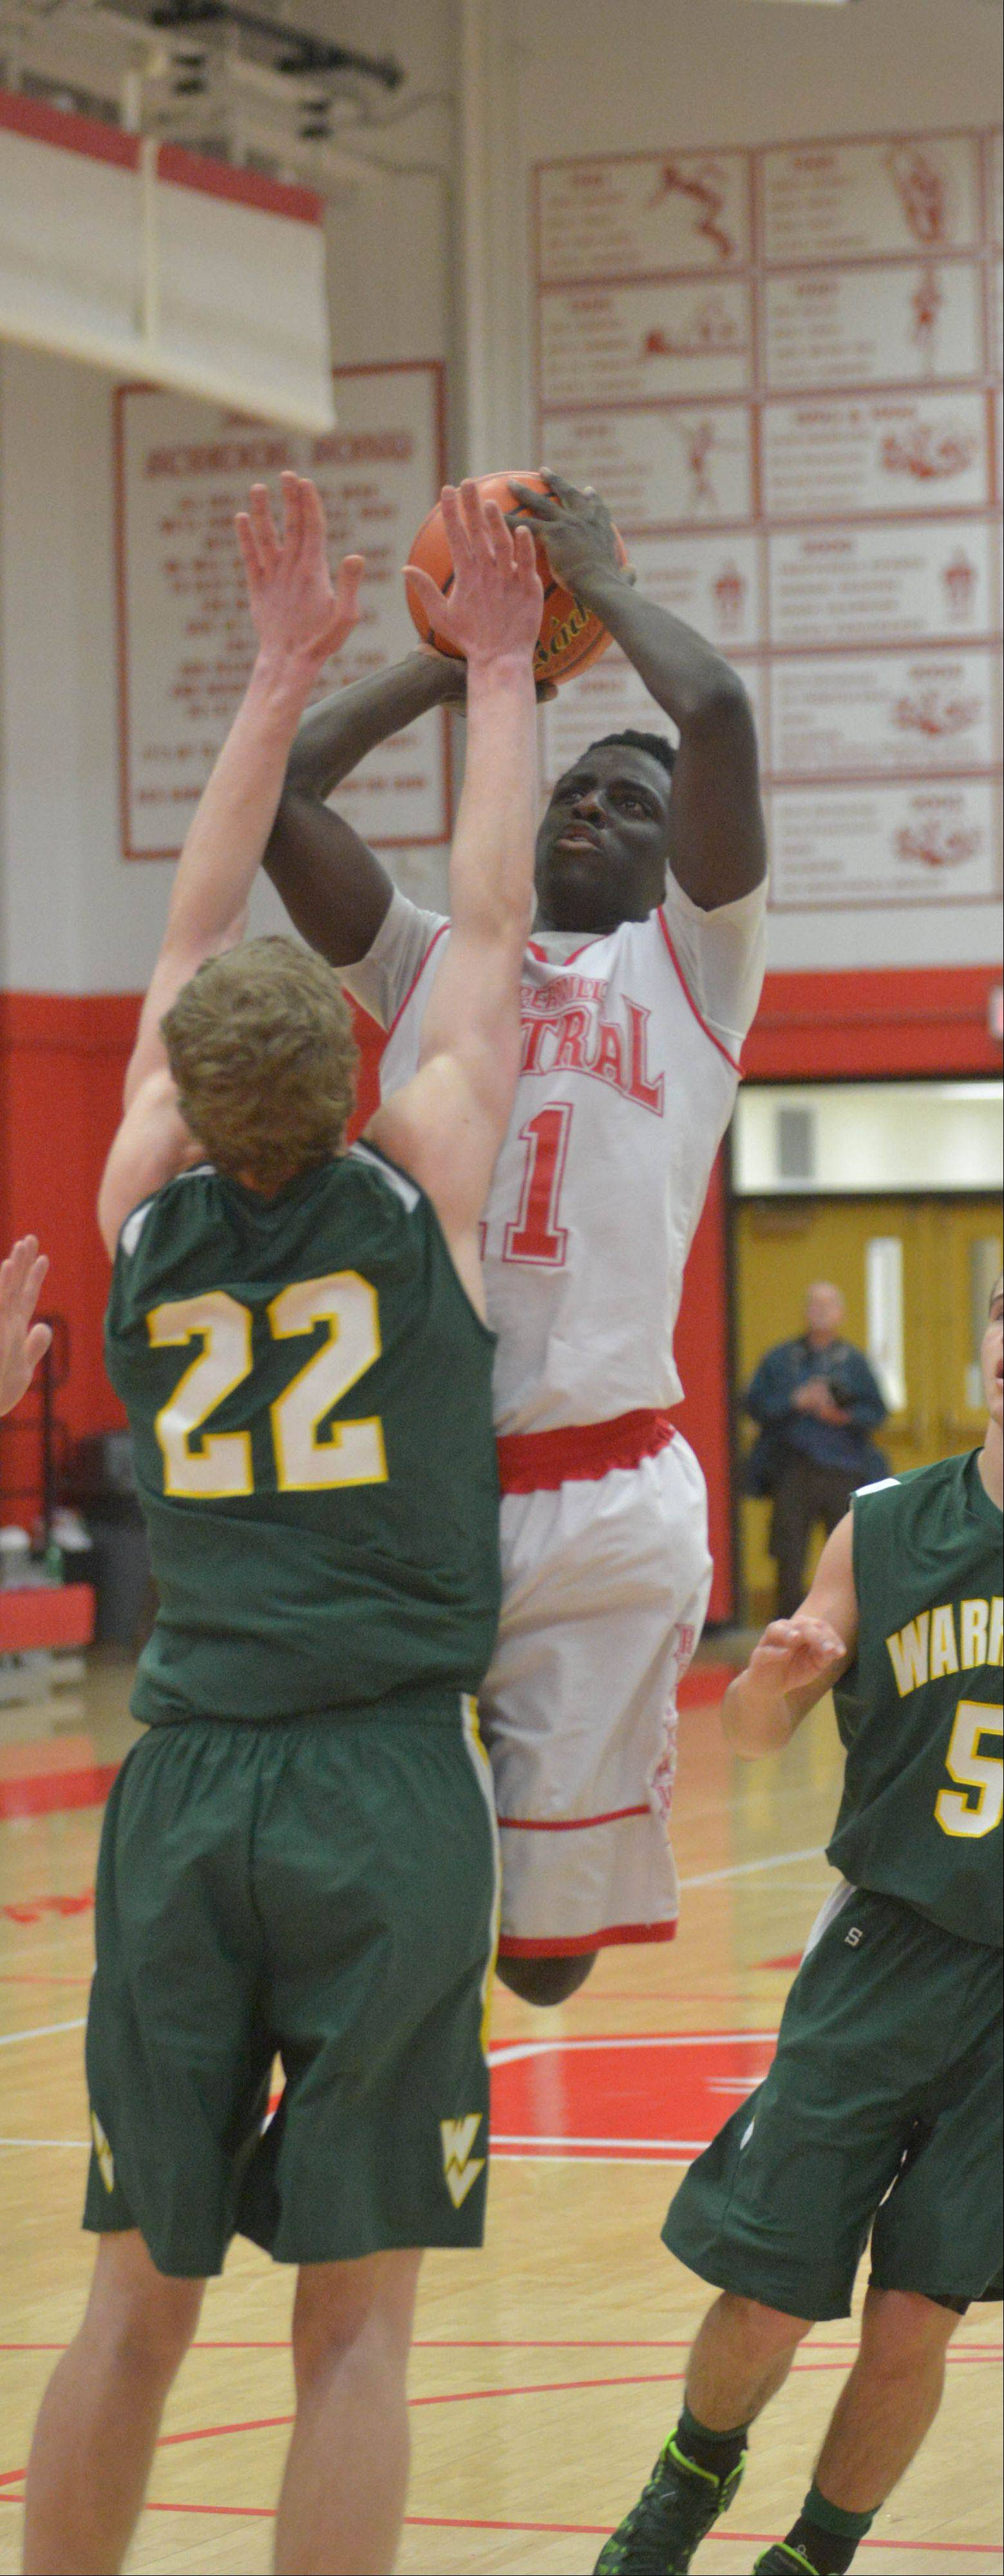 Jack Cordes of Waubonsie Valley pressures Manny Rugamba of Naperville Central.